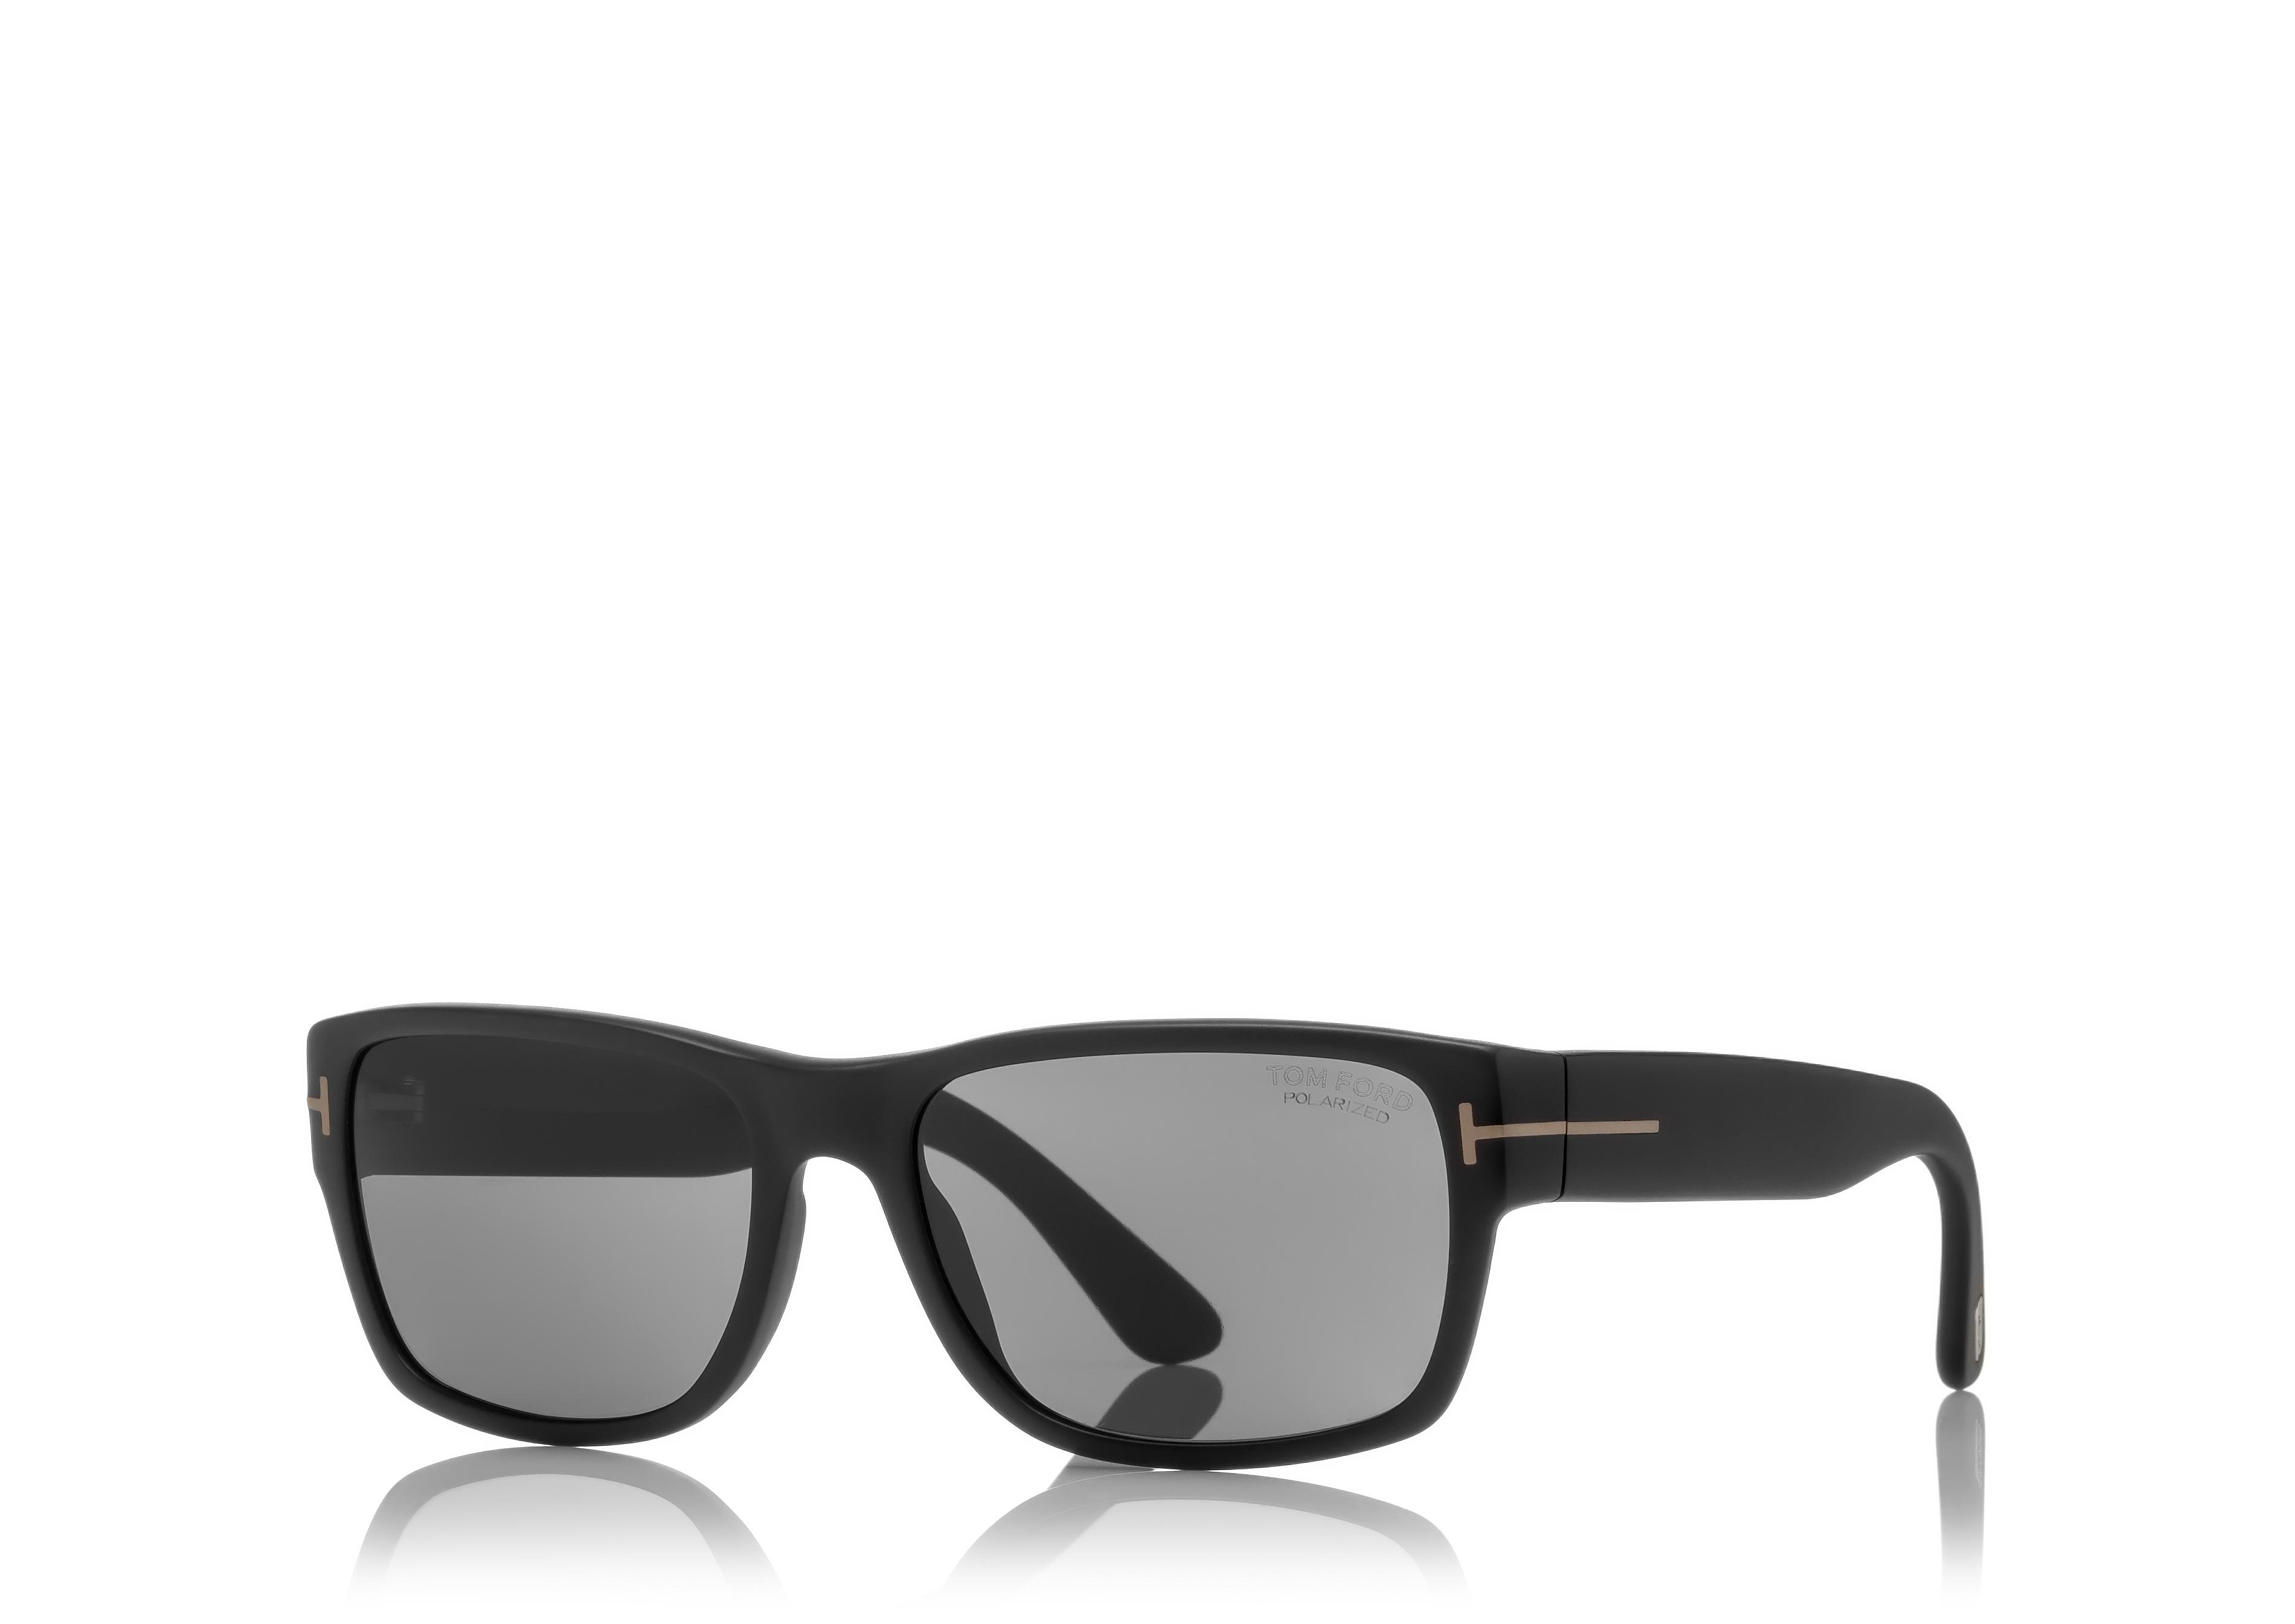 MASON SUNGLASSES POLARIZED C thumbnail